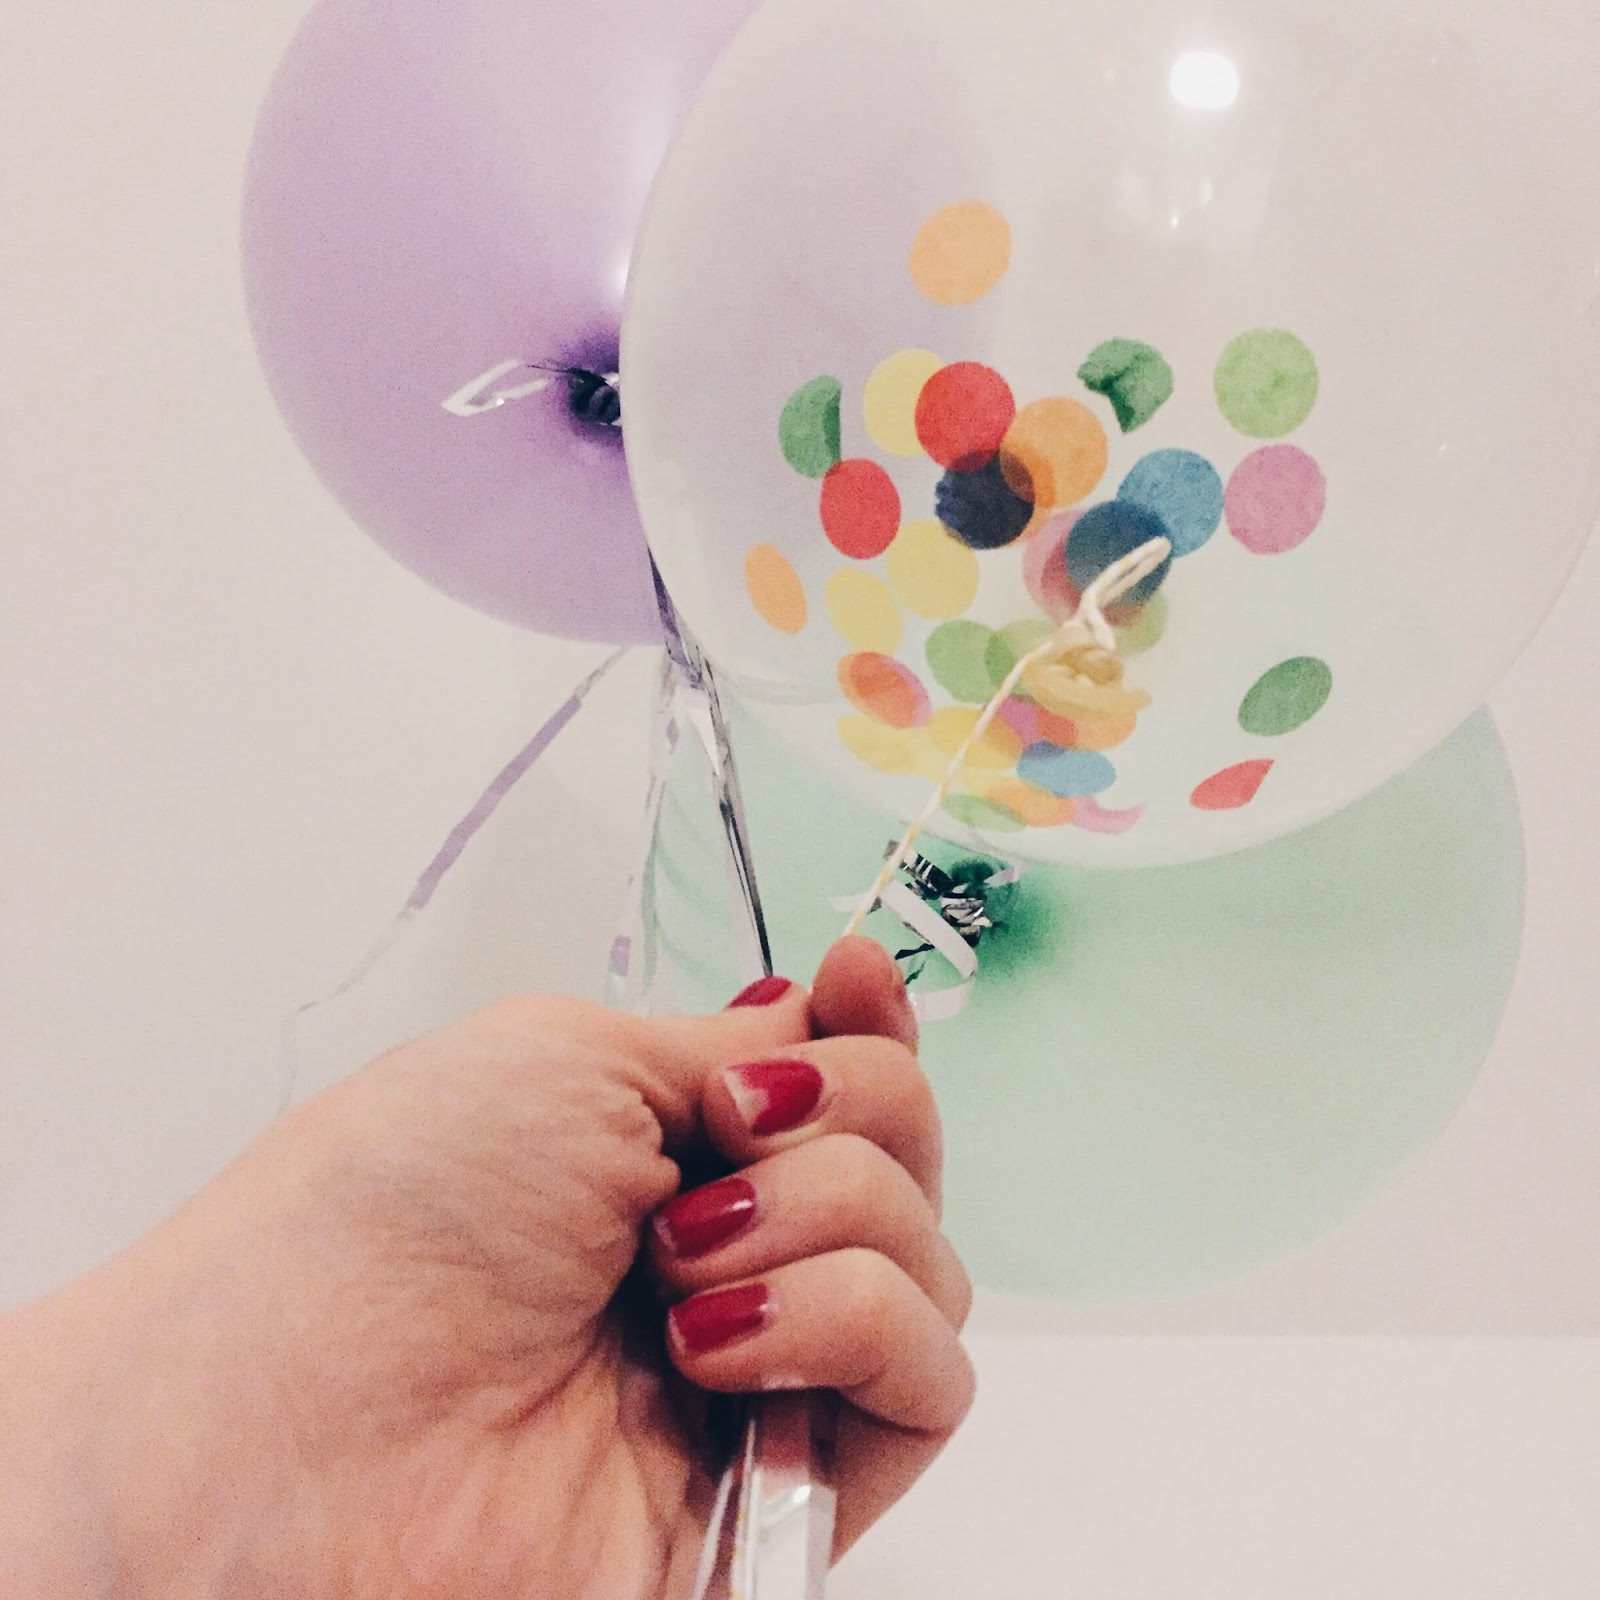 ballons confetti decoration